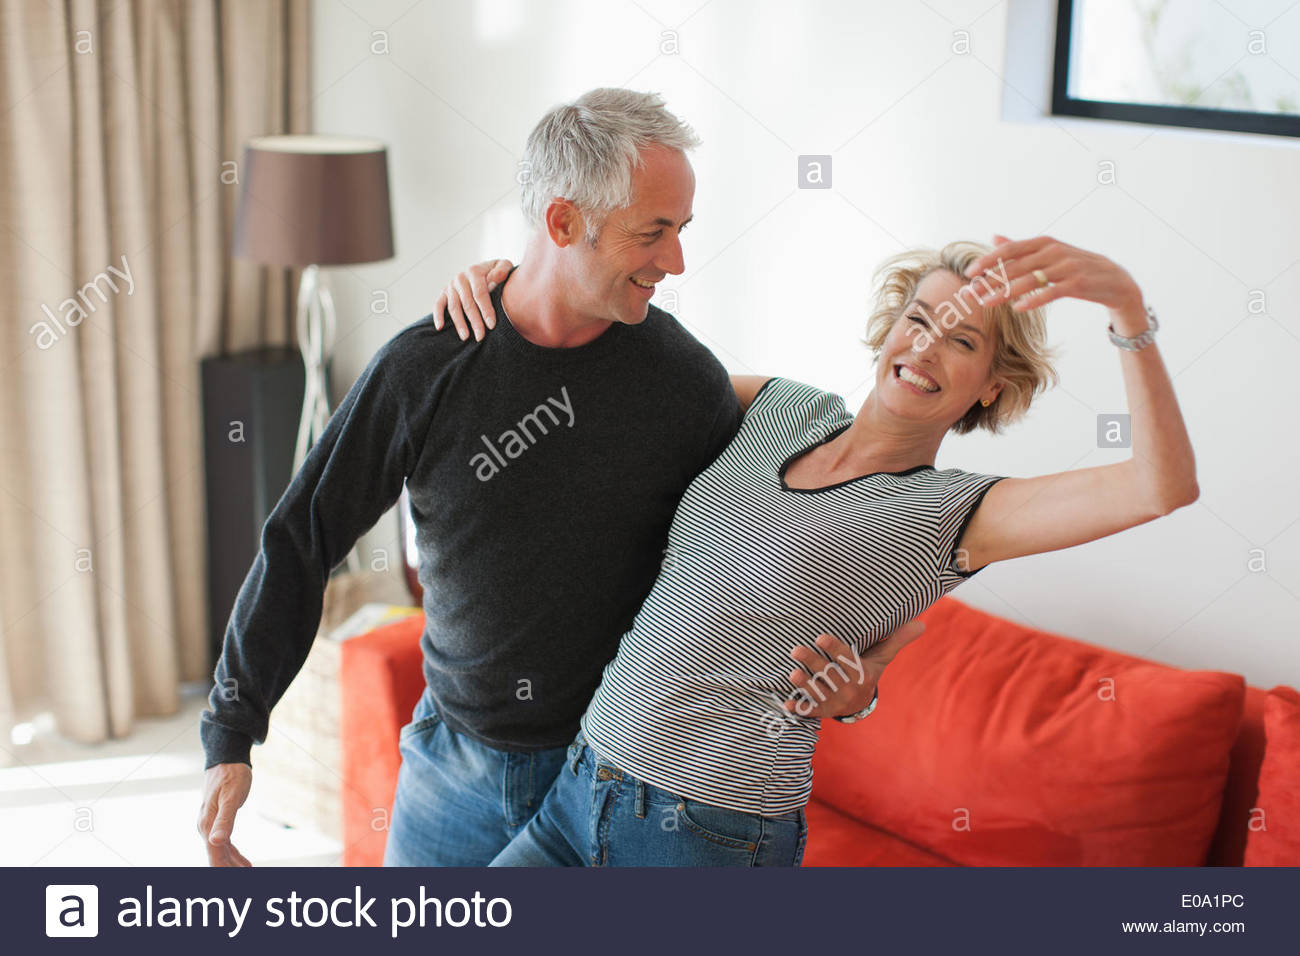 Mature couple dancing in living room - Stock Image